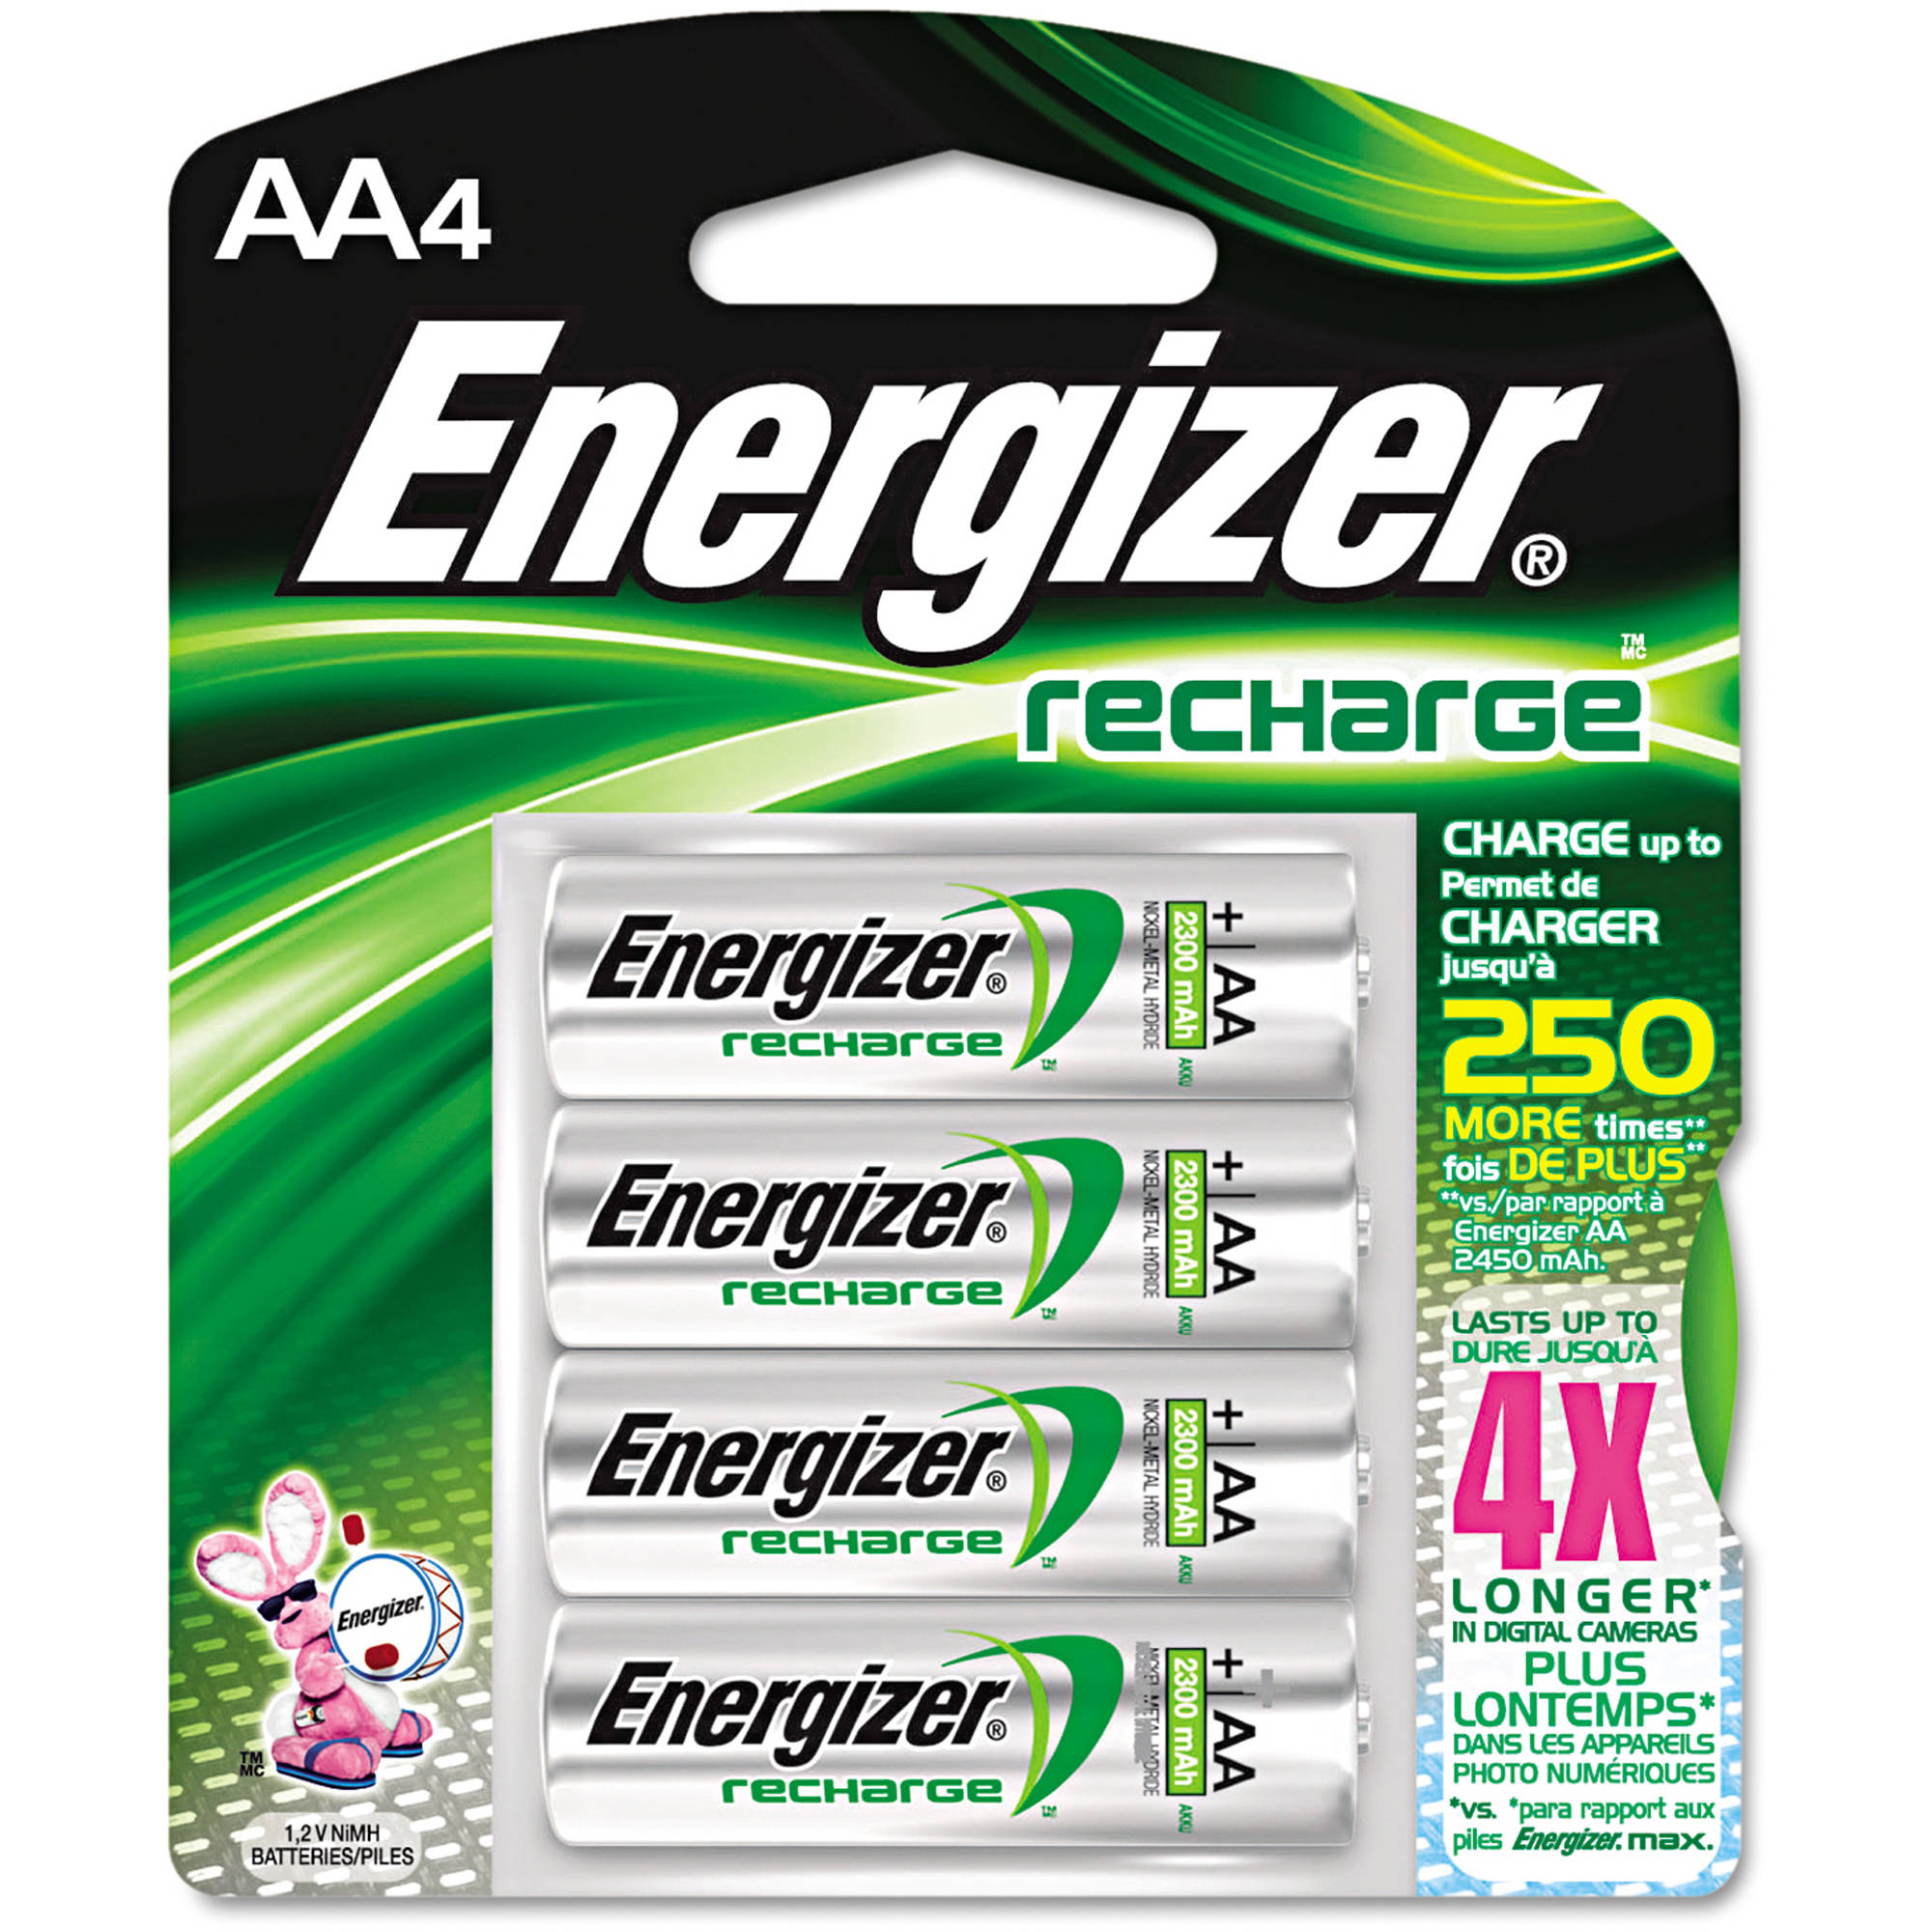 Energizer e2 NiMH Rechargeable Batteries, AA - 4 per pack